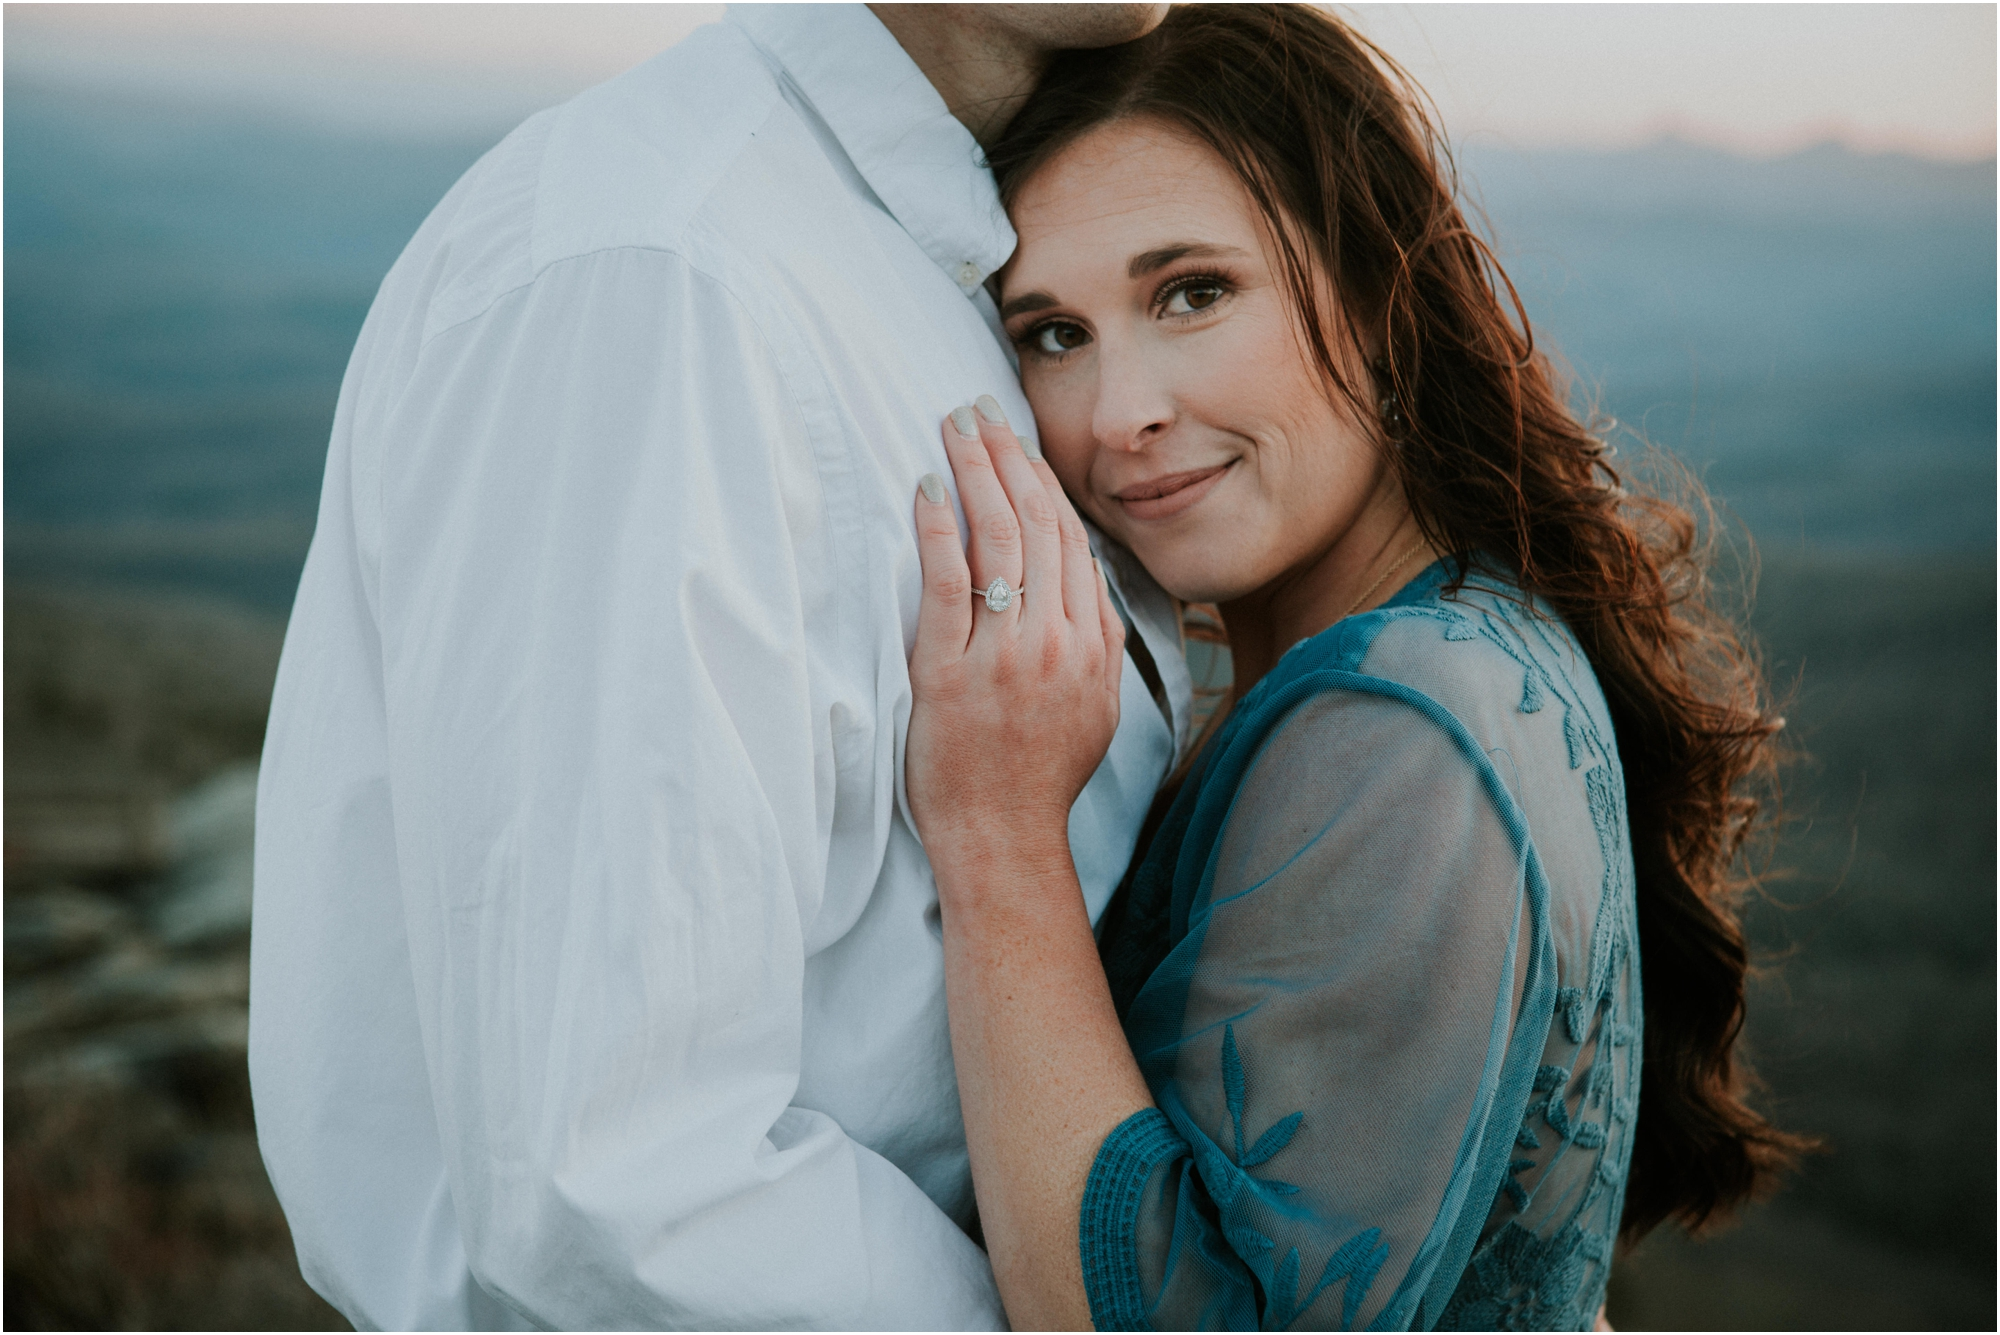 blue-ridge-parkway-engagement-session-north-carolina-boone-blowing-rock-northeast-tennessee-katy-sergent-photography_0030.jpg